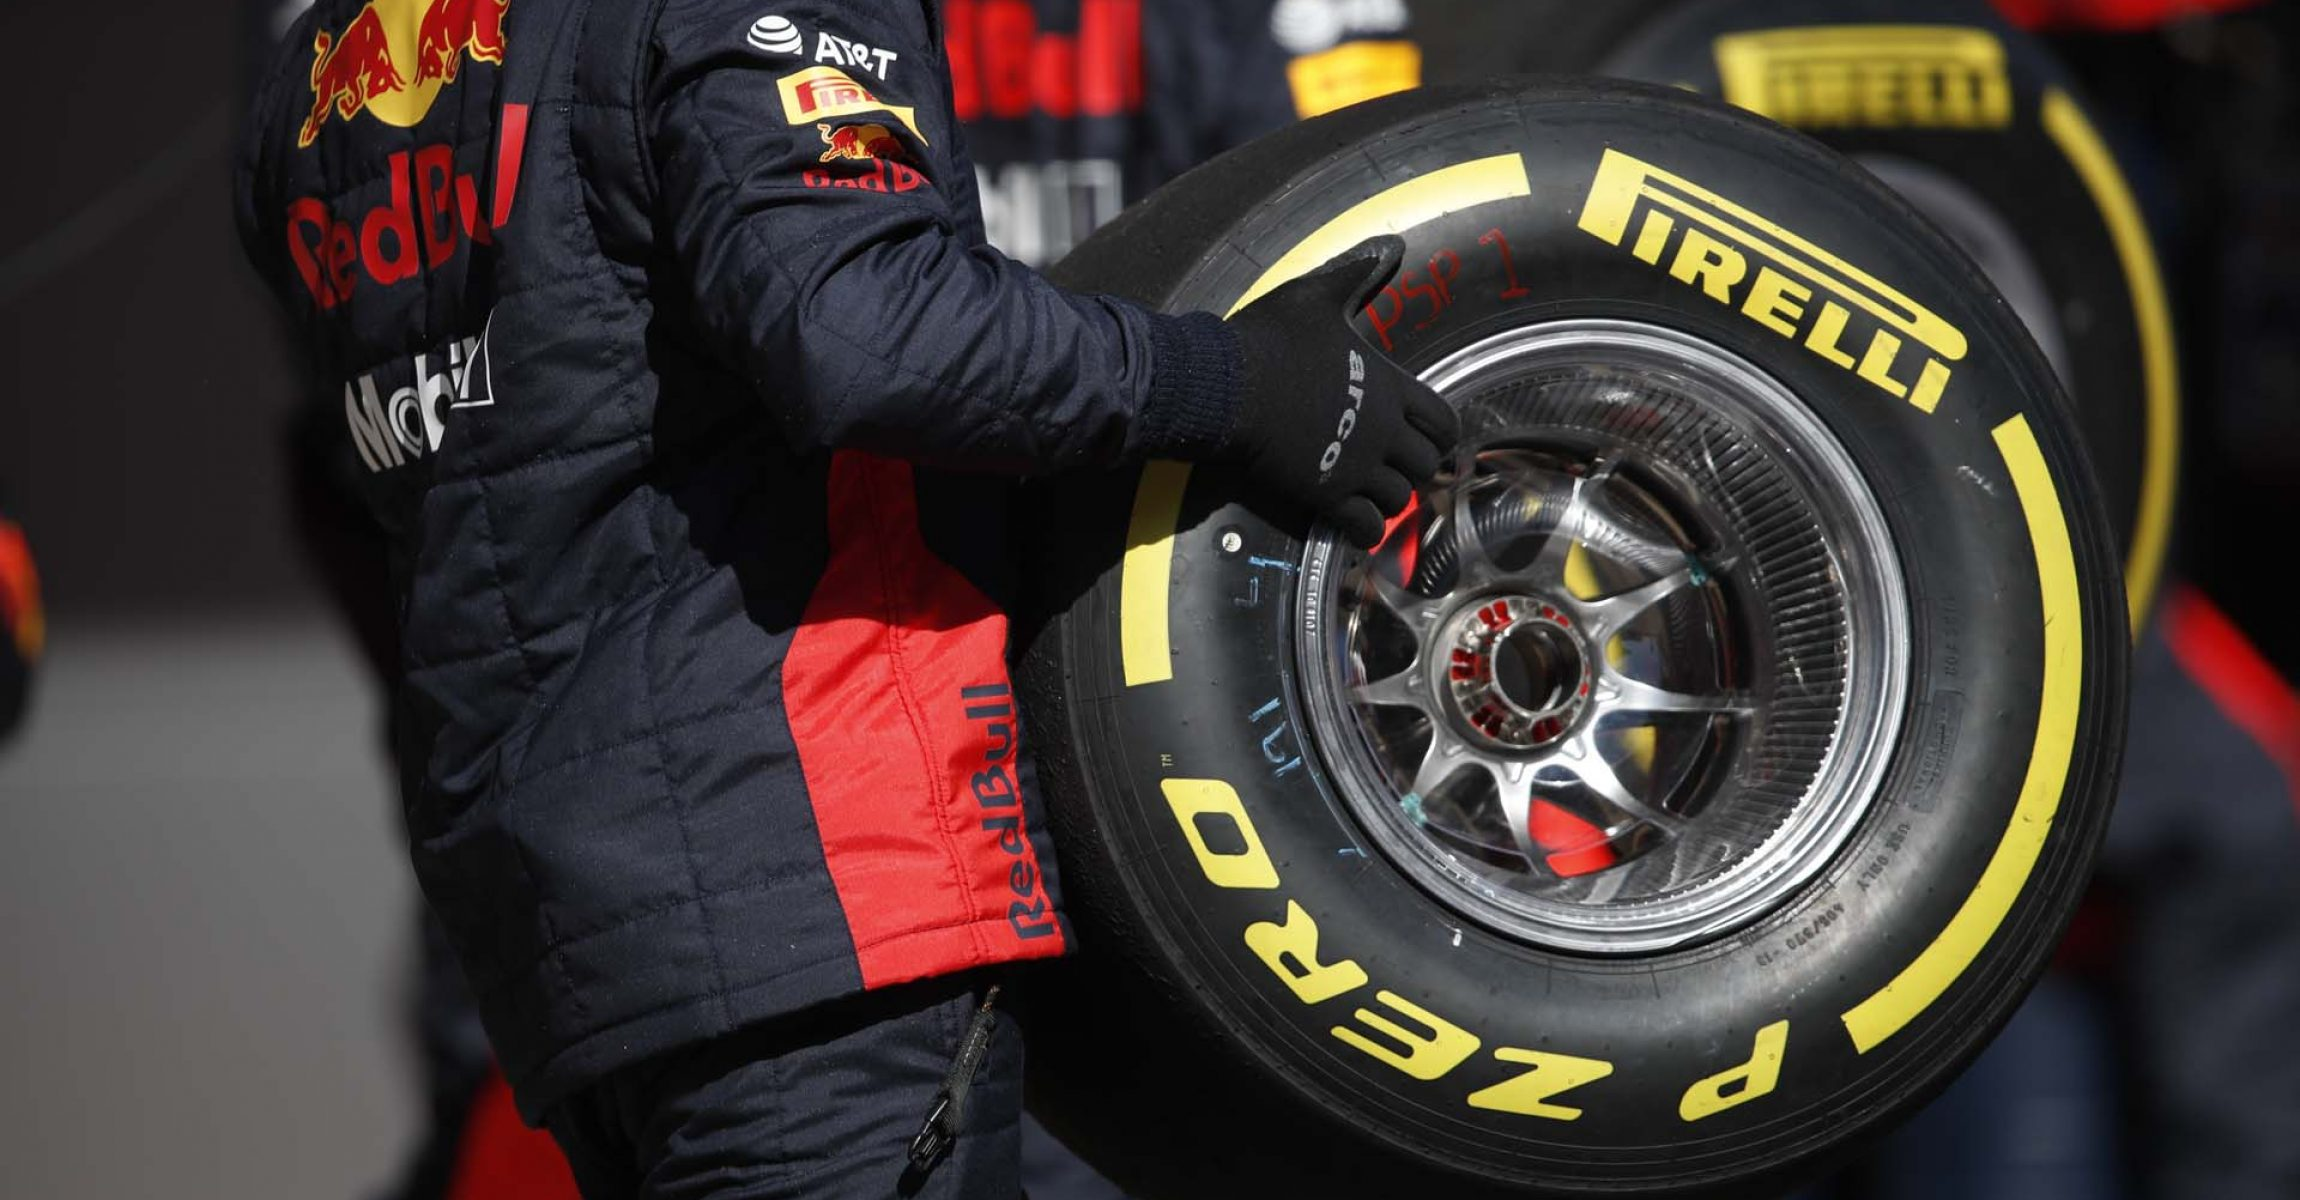 CIRCUIT DE BARCELONA-CATALUNYA, SPAIN - FEBRUARY 26: Alexander Albon, Red Bull Racing comes in for a pit stop during the Barcelona February testing II at Circuit de Barcelona-Catalunya on February 26, 2020 in Circuit de Barcelona-Catalunya, Spain. (Photo by Zak Mauger / LAT Images)